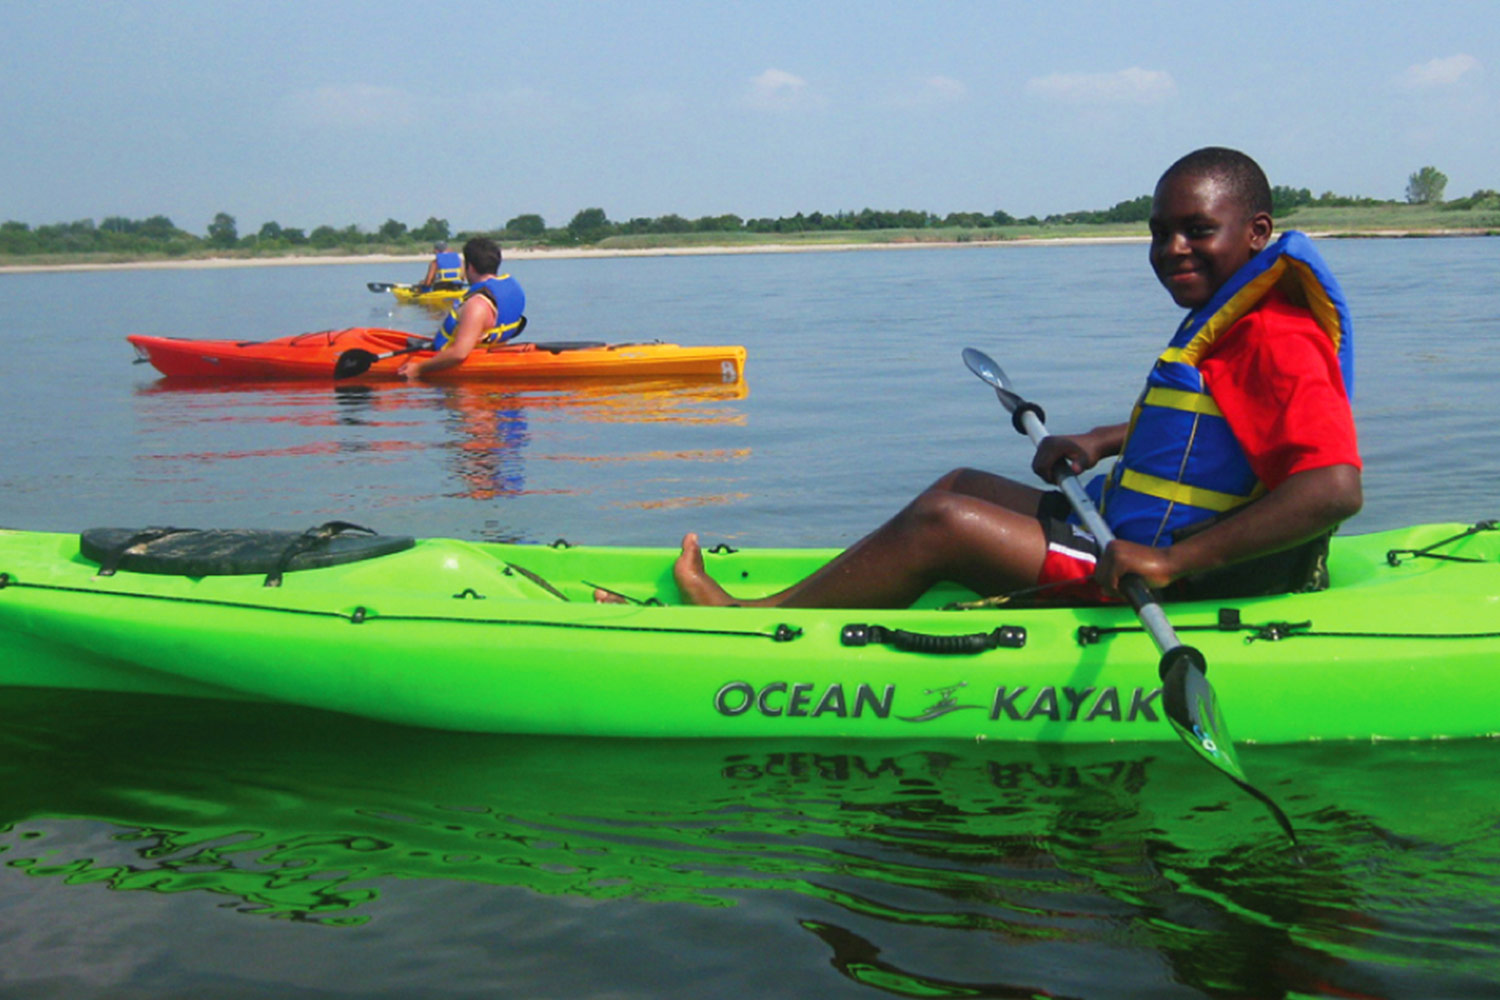 A child sitting in a bright green kayak on the Jamaica Bay estuary, with two other men in kayaks on the water behind him